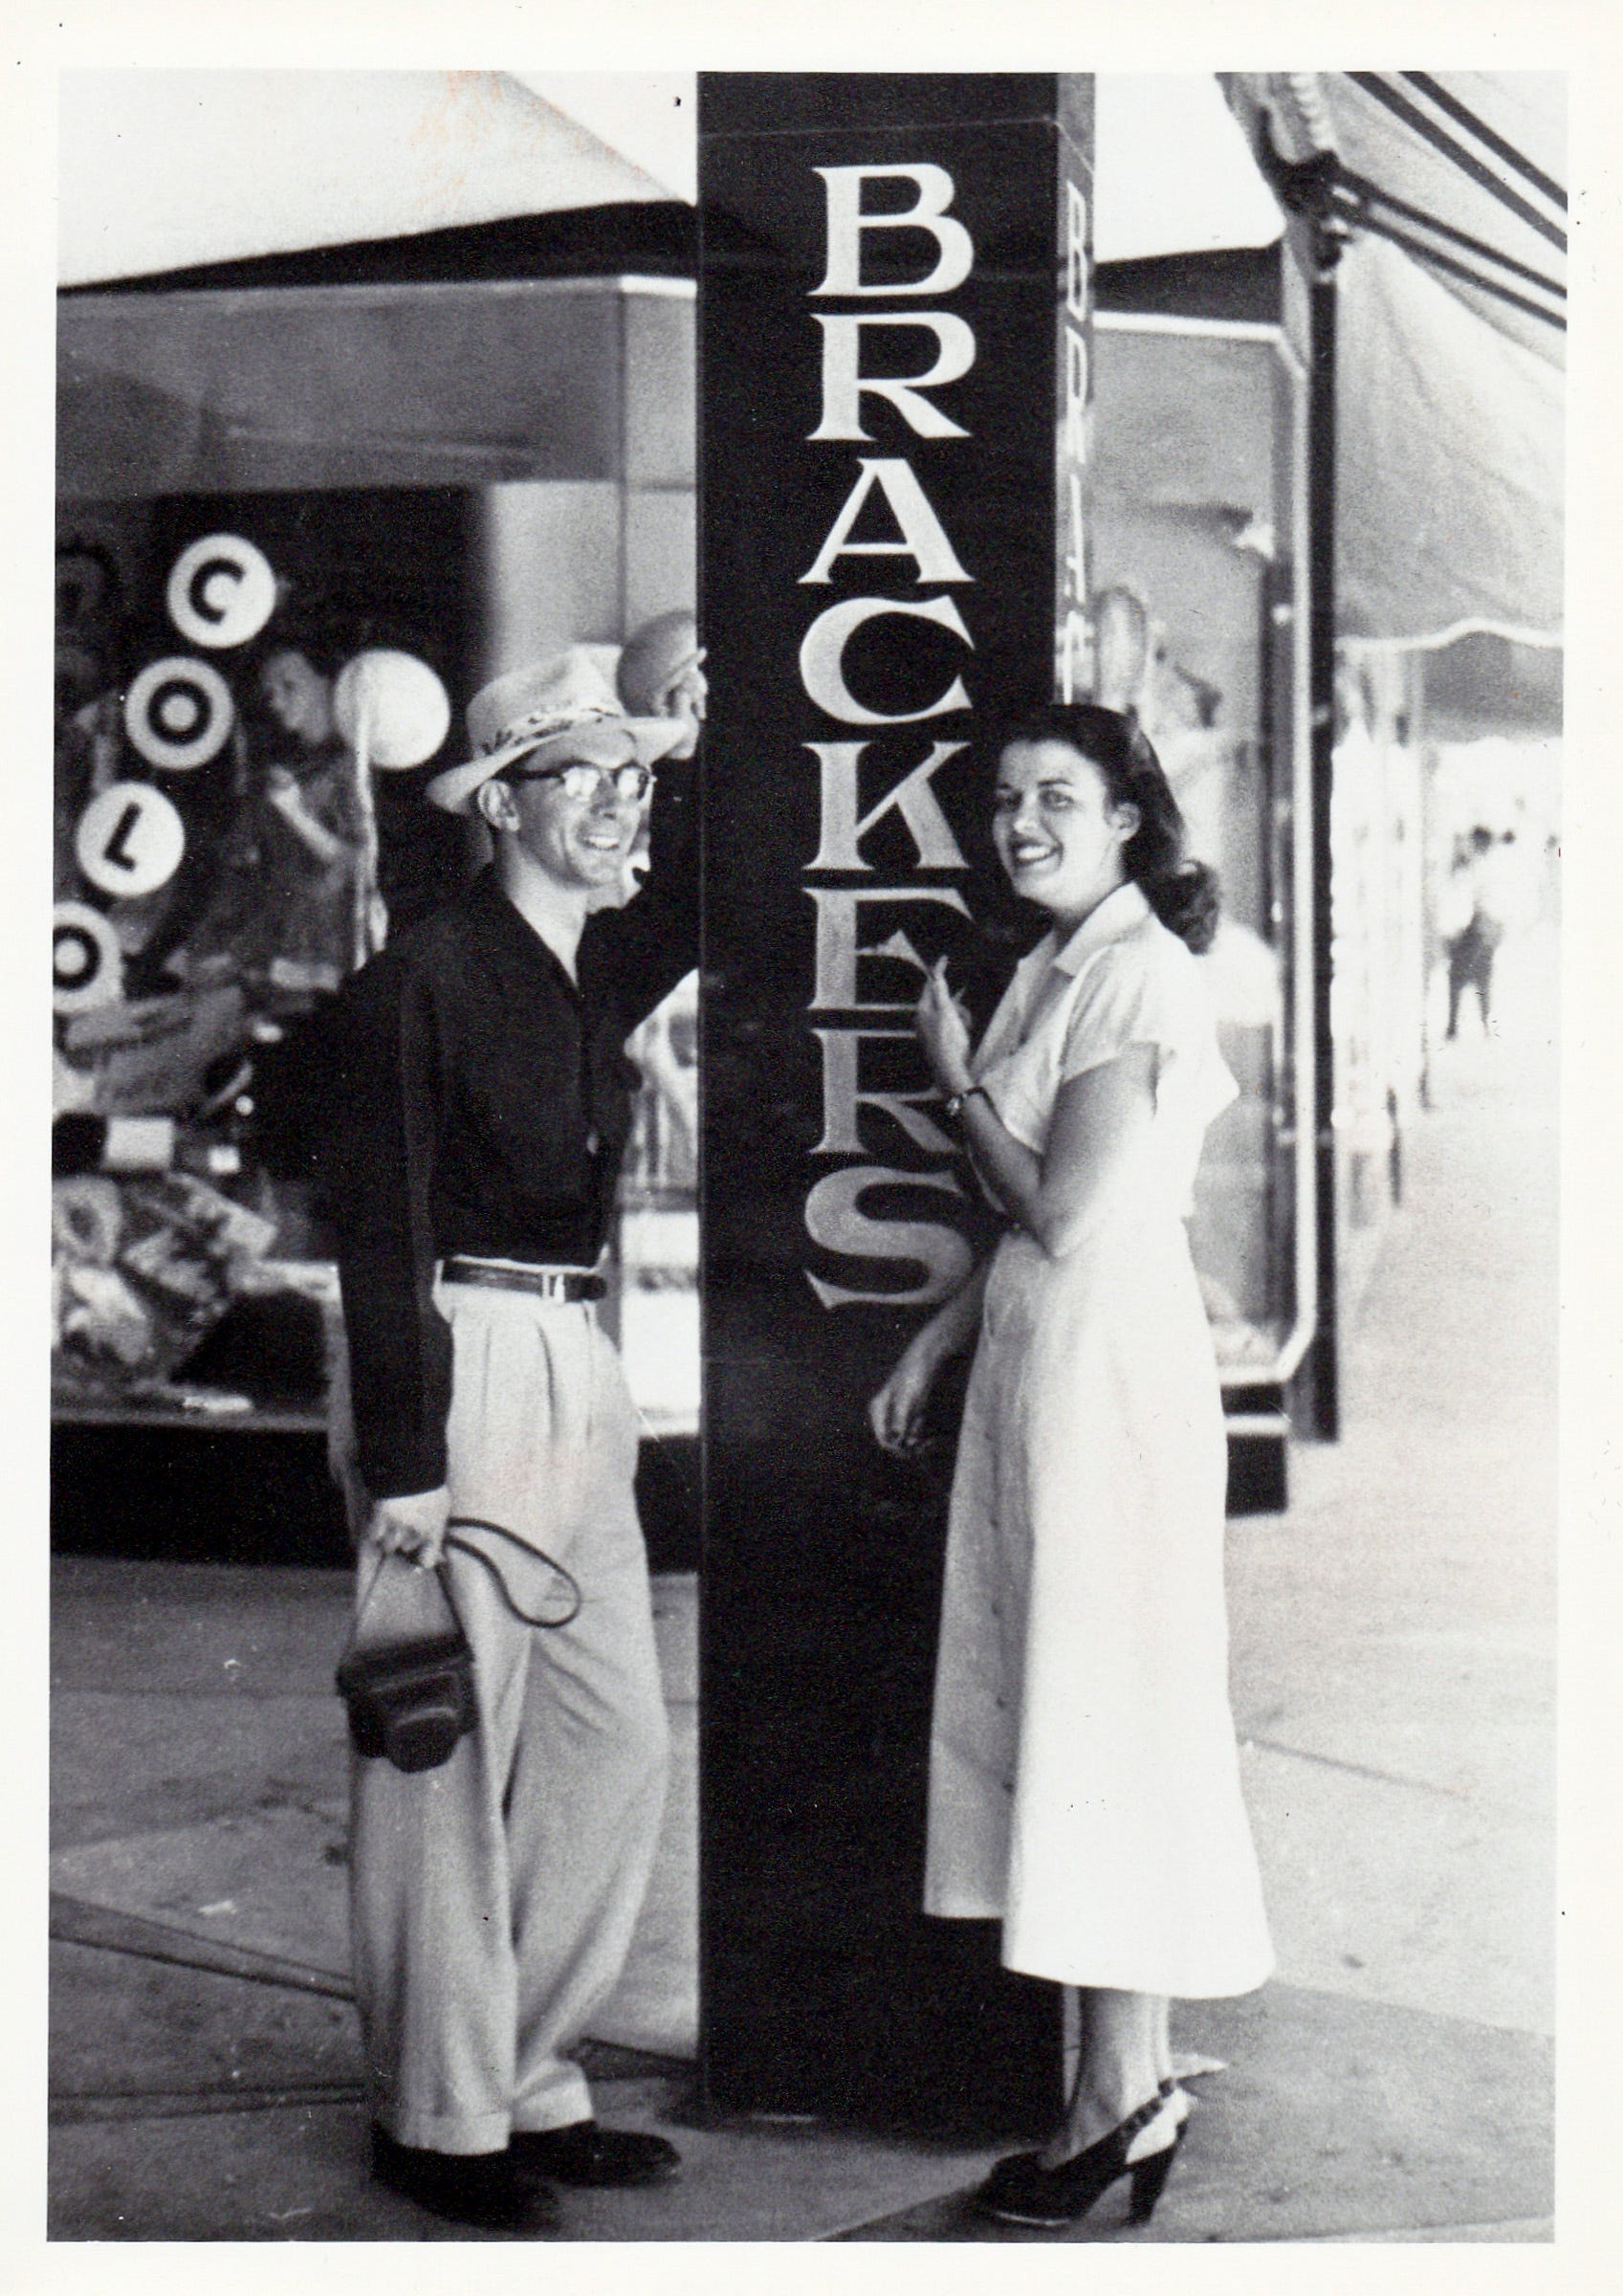 An undated photo of Harvey and Laurie Bracker in front